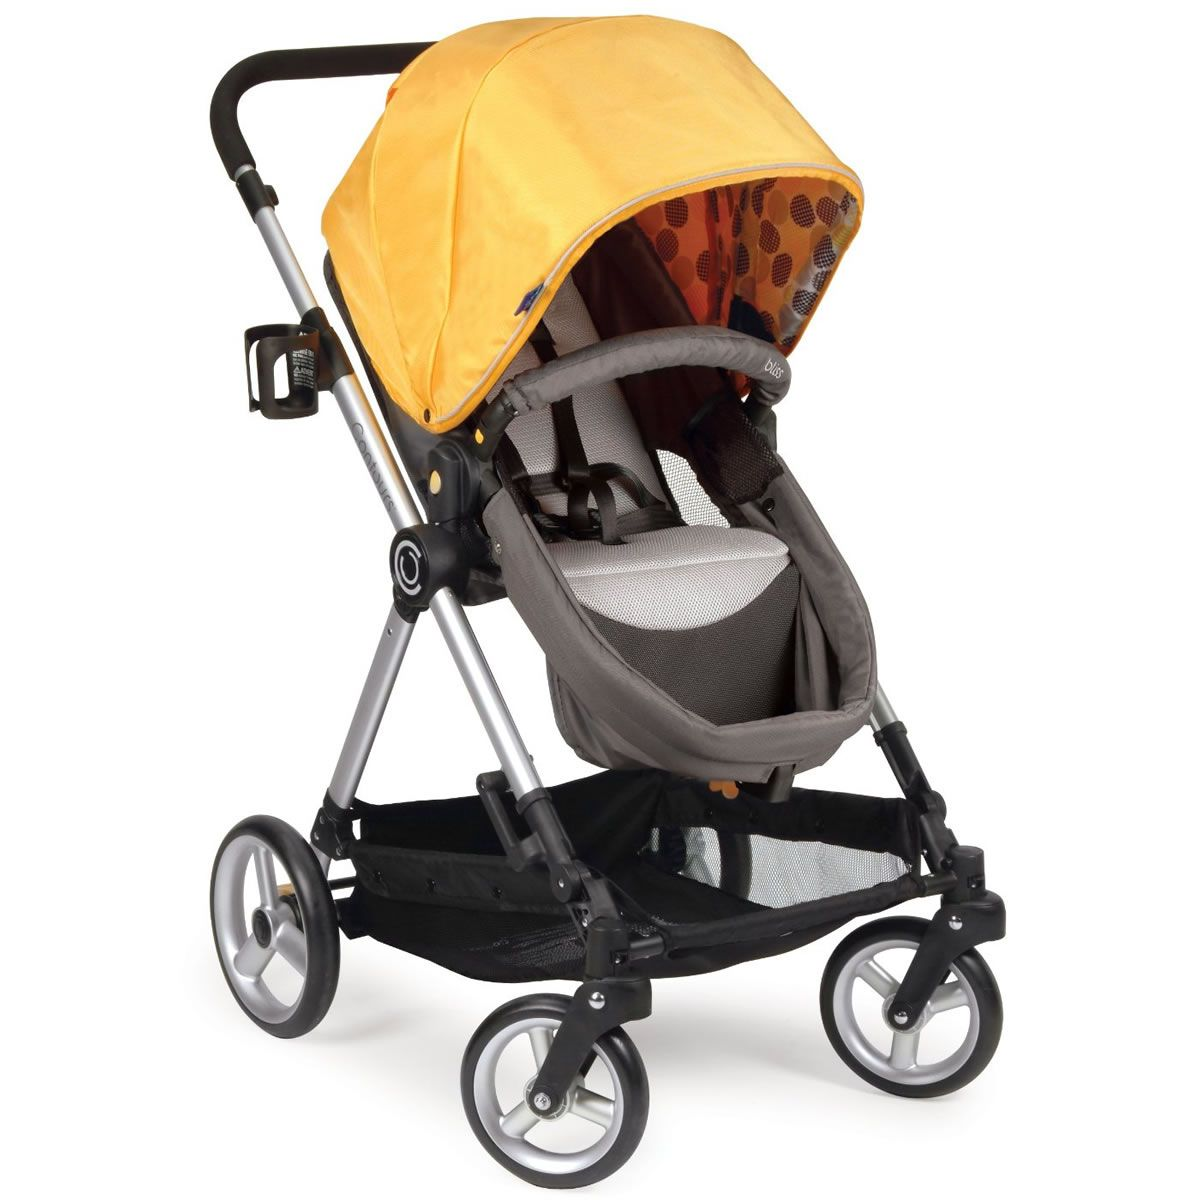 Contours Bliss 4in1 Baby Stroller System Valencia Gold